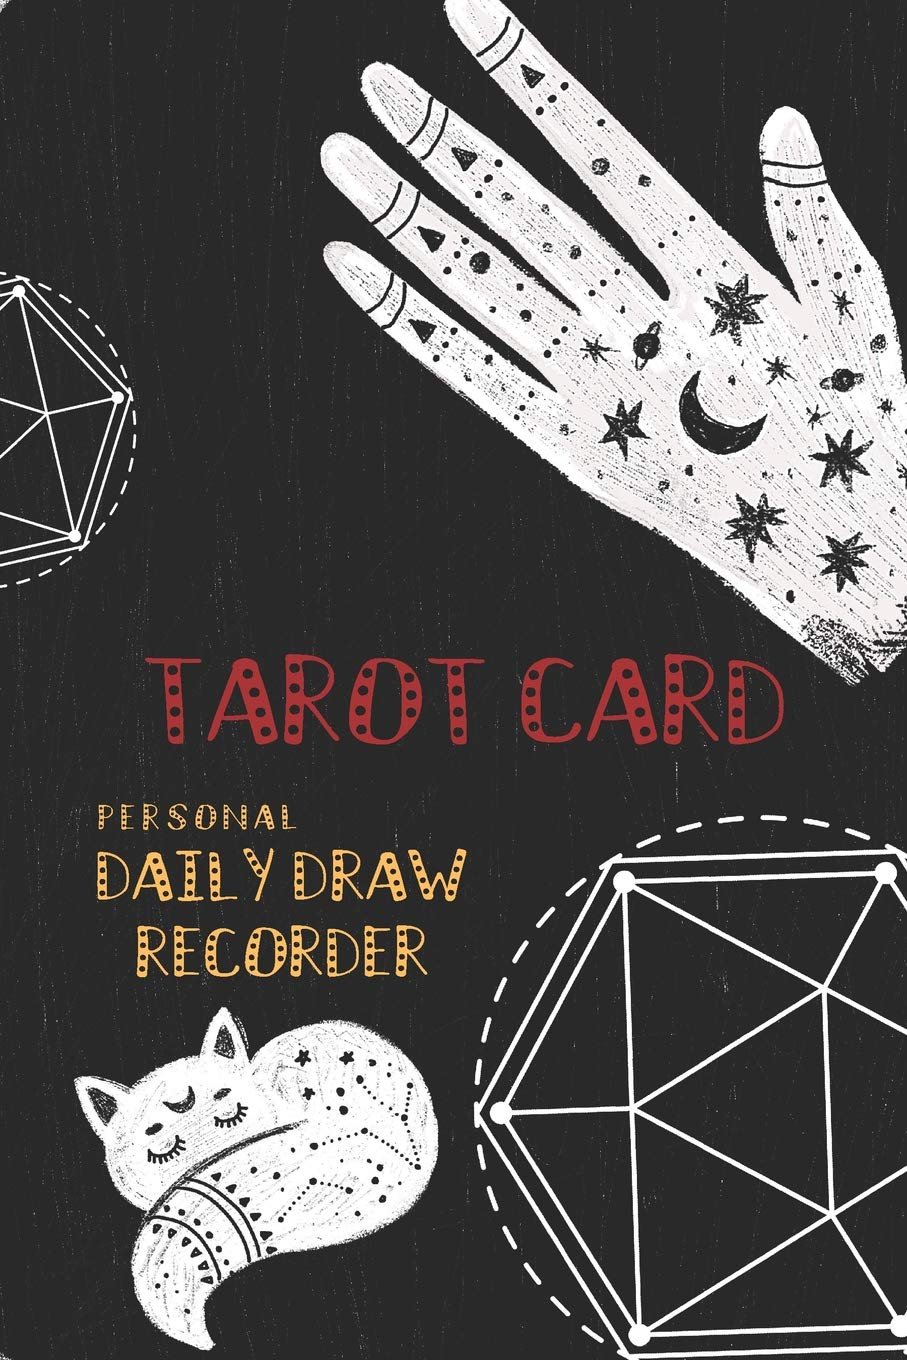 Tarot Card Personal Daily Draw Recorder: Companion Book for